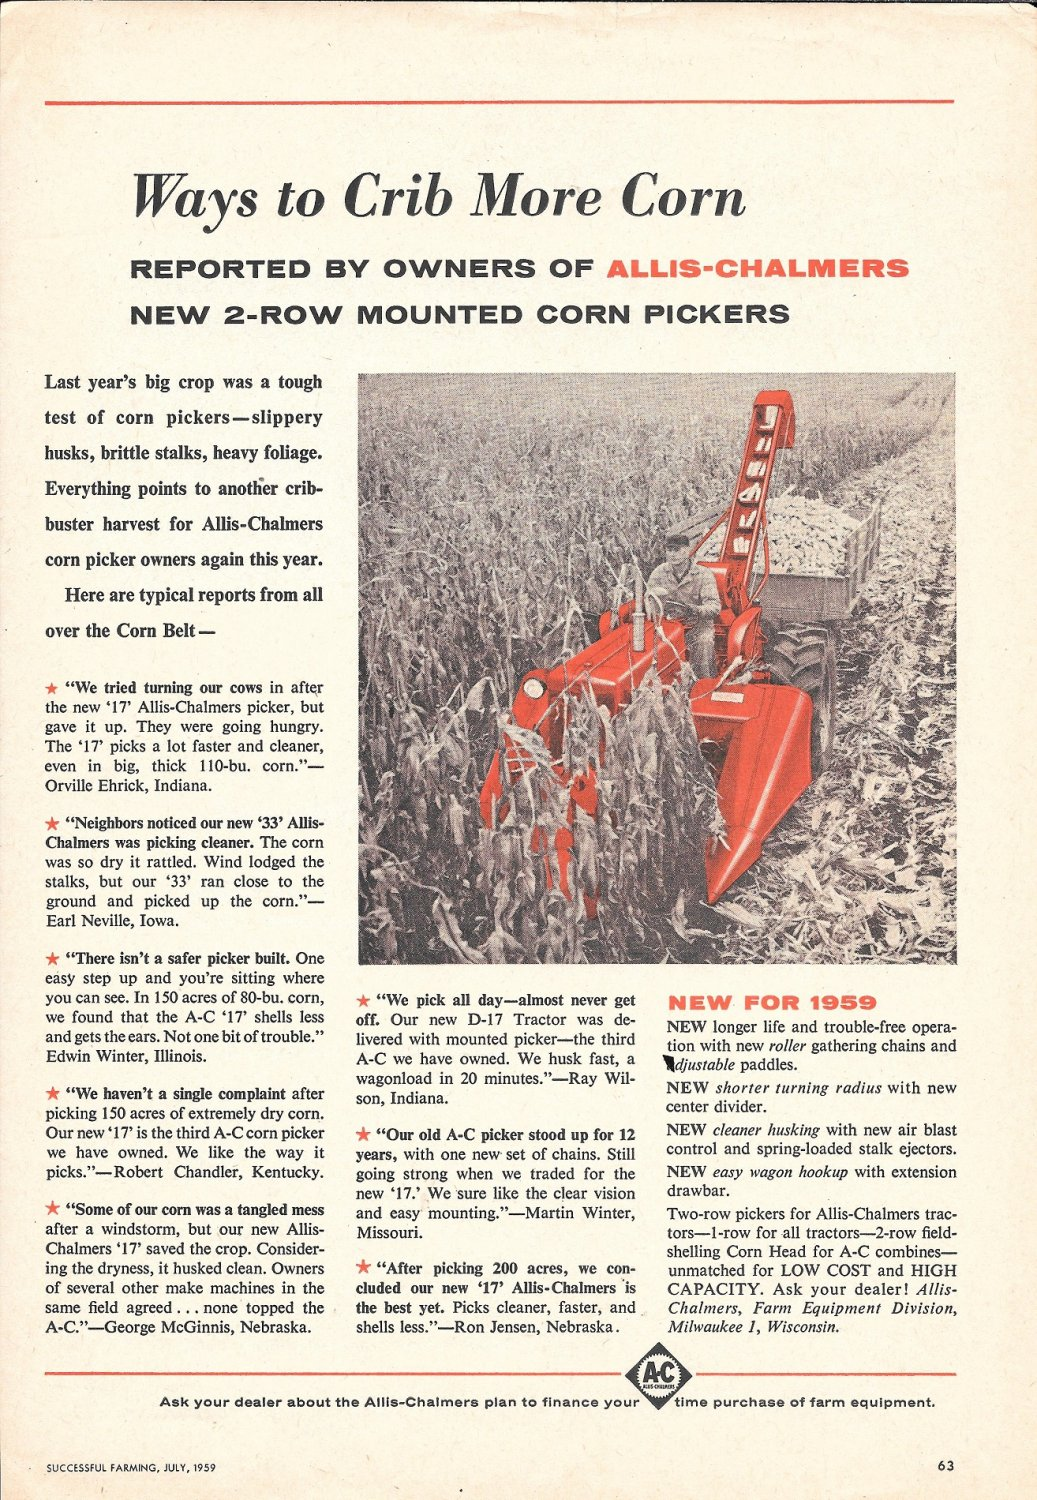 1959 Allis Chalmers 2 Row Mounted Corn Pickers Ad Way To Crib More Corn